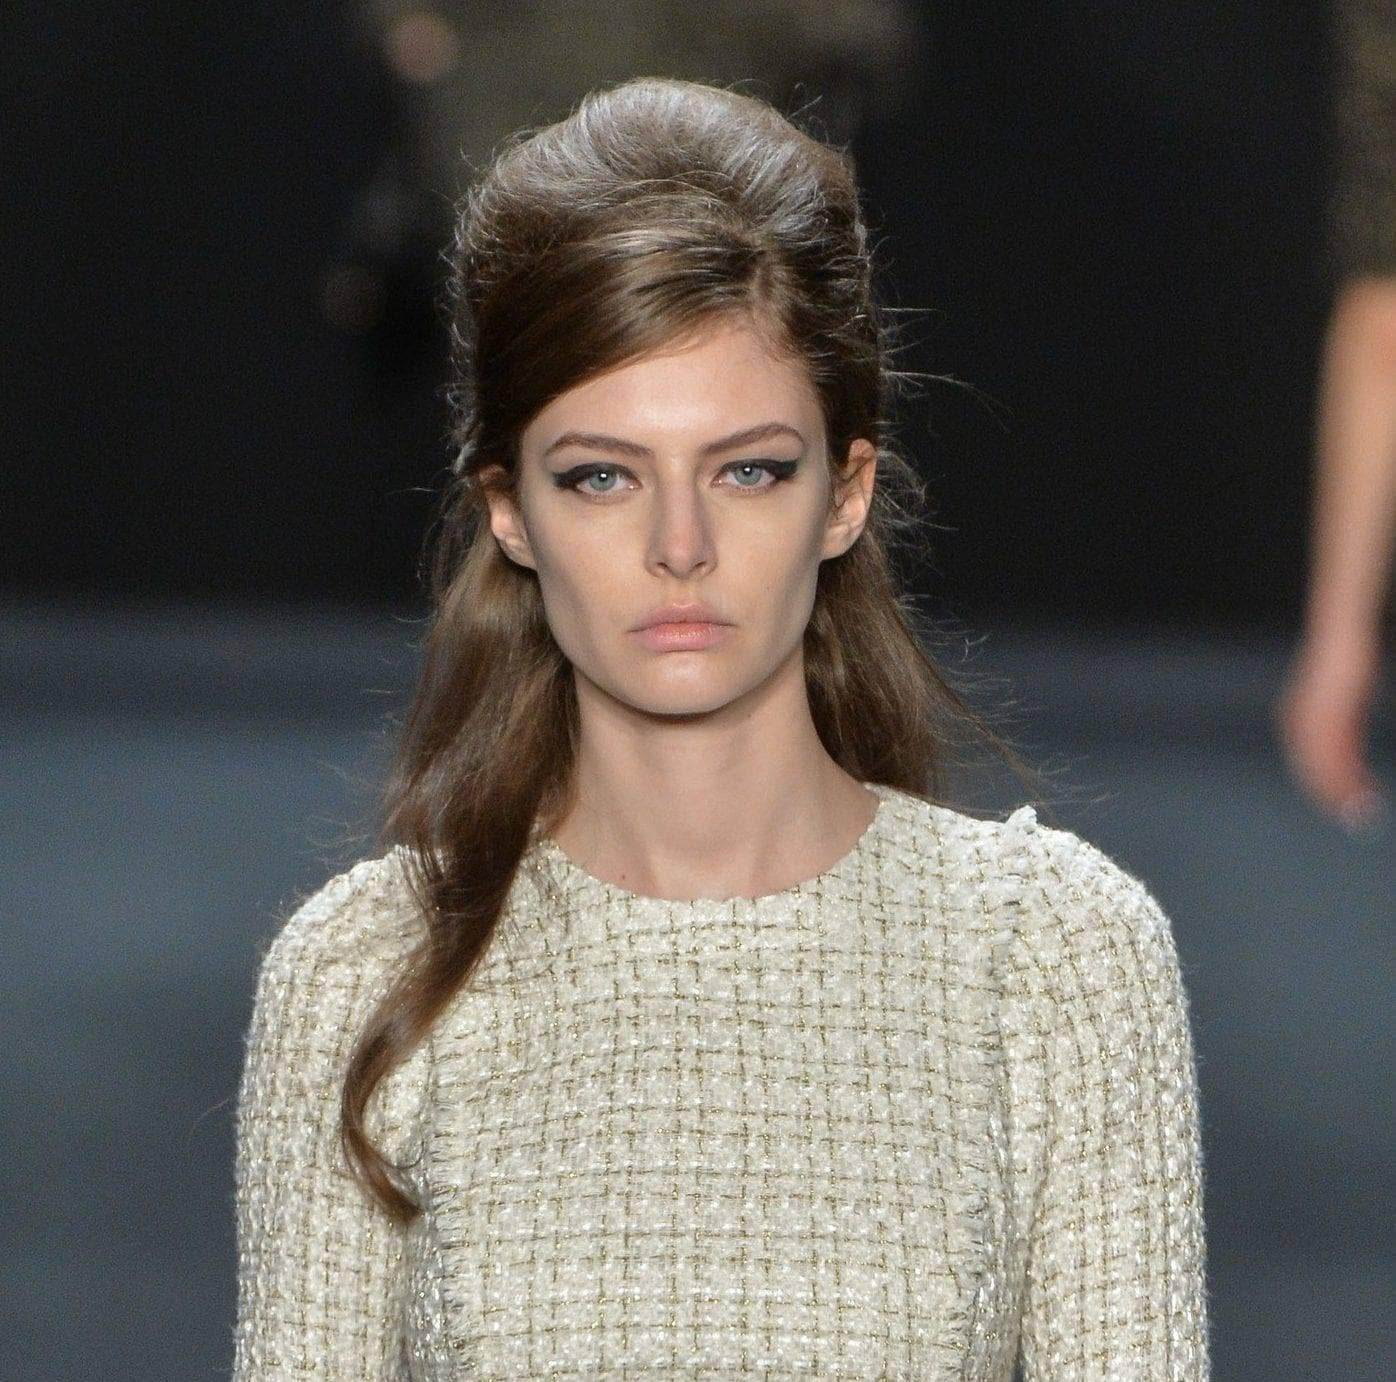 easy vintage hairstyles: close up shot of model on the runway with a half-up, half down bouffant hairstyle, wearing a checked dress